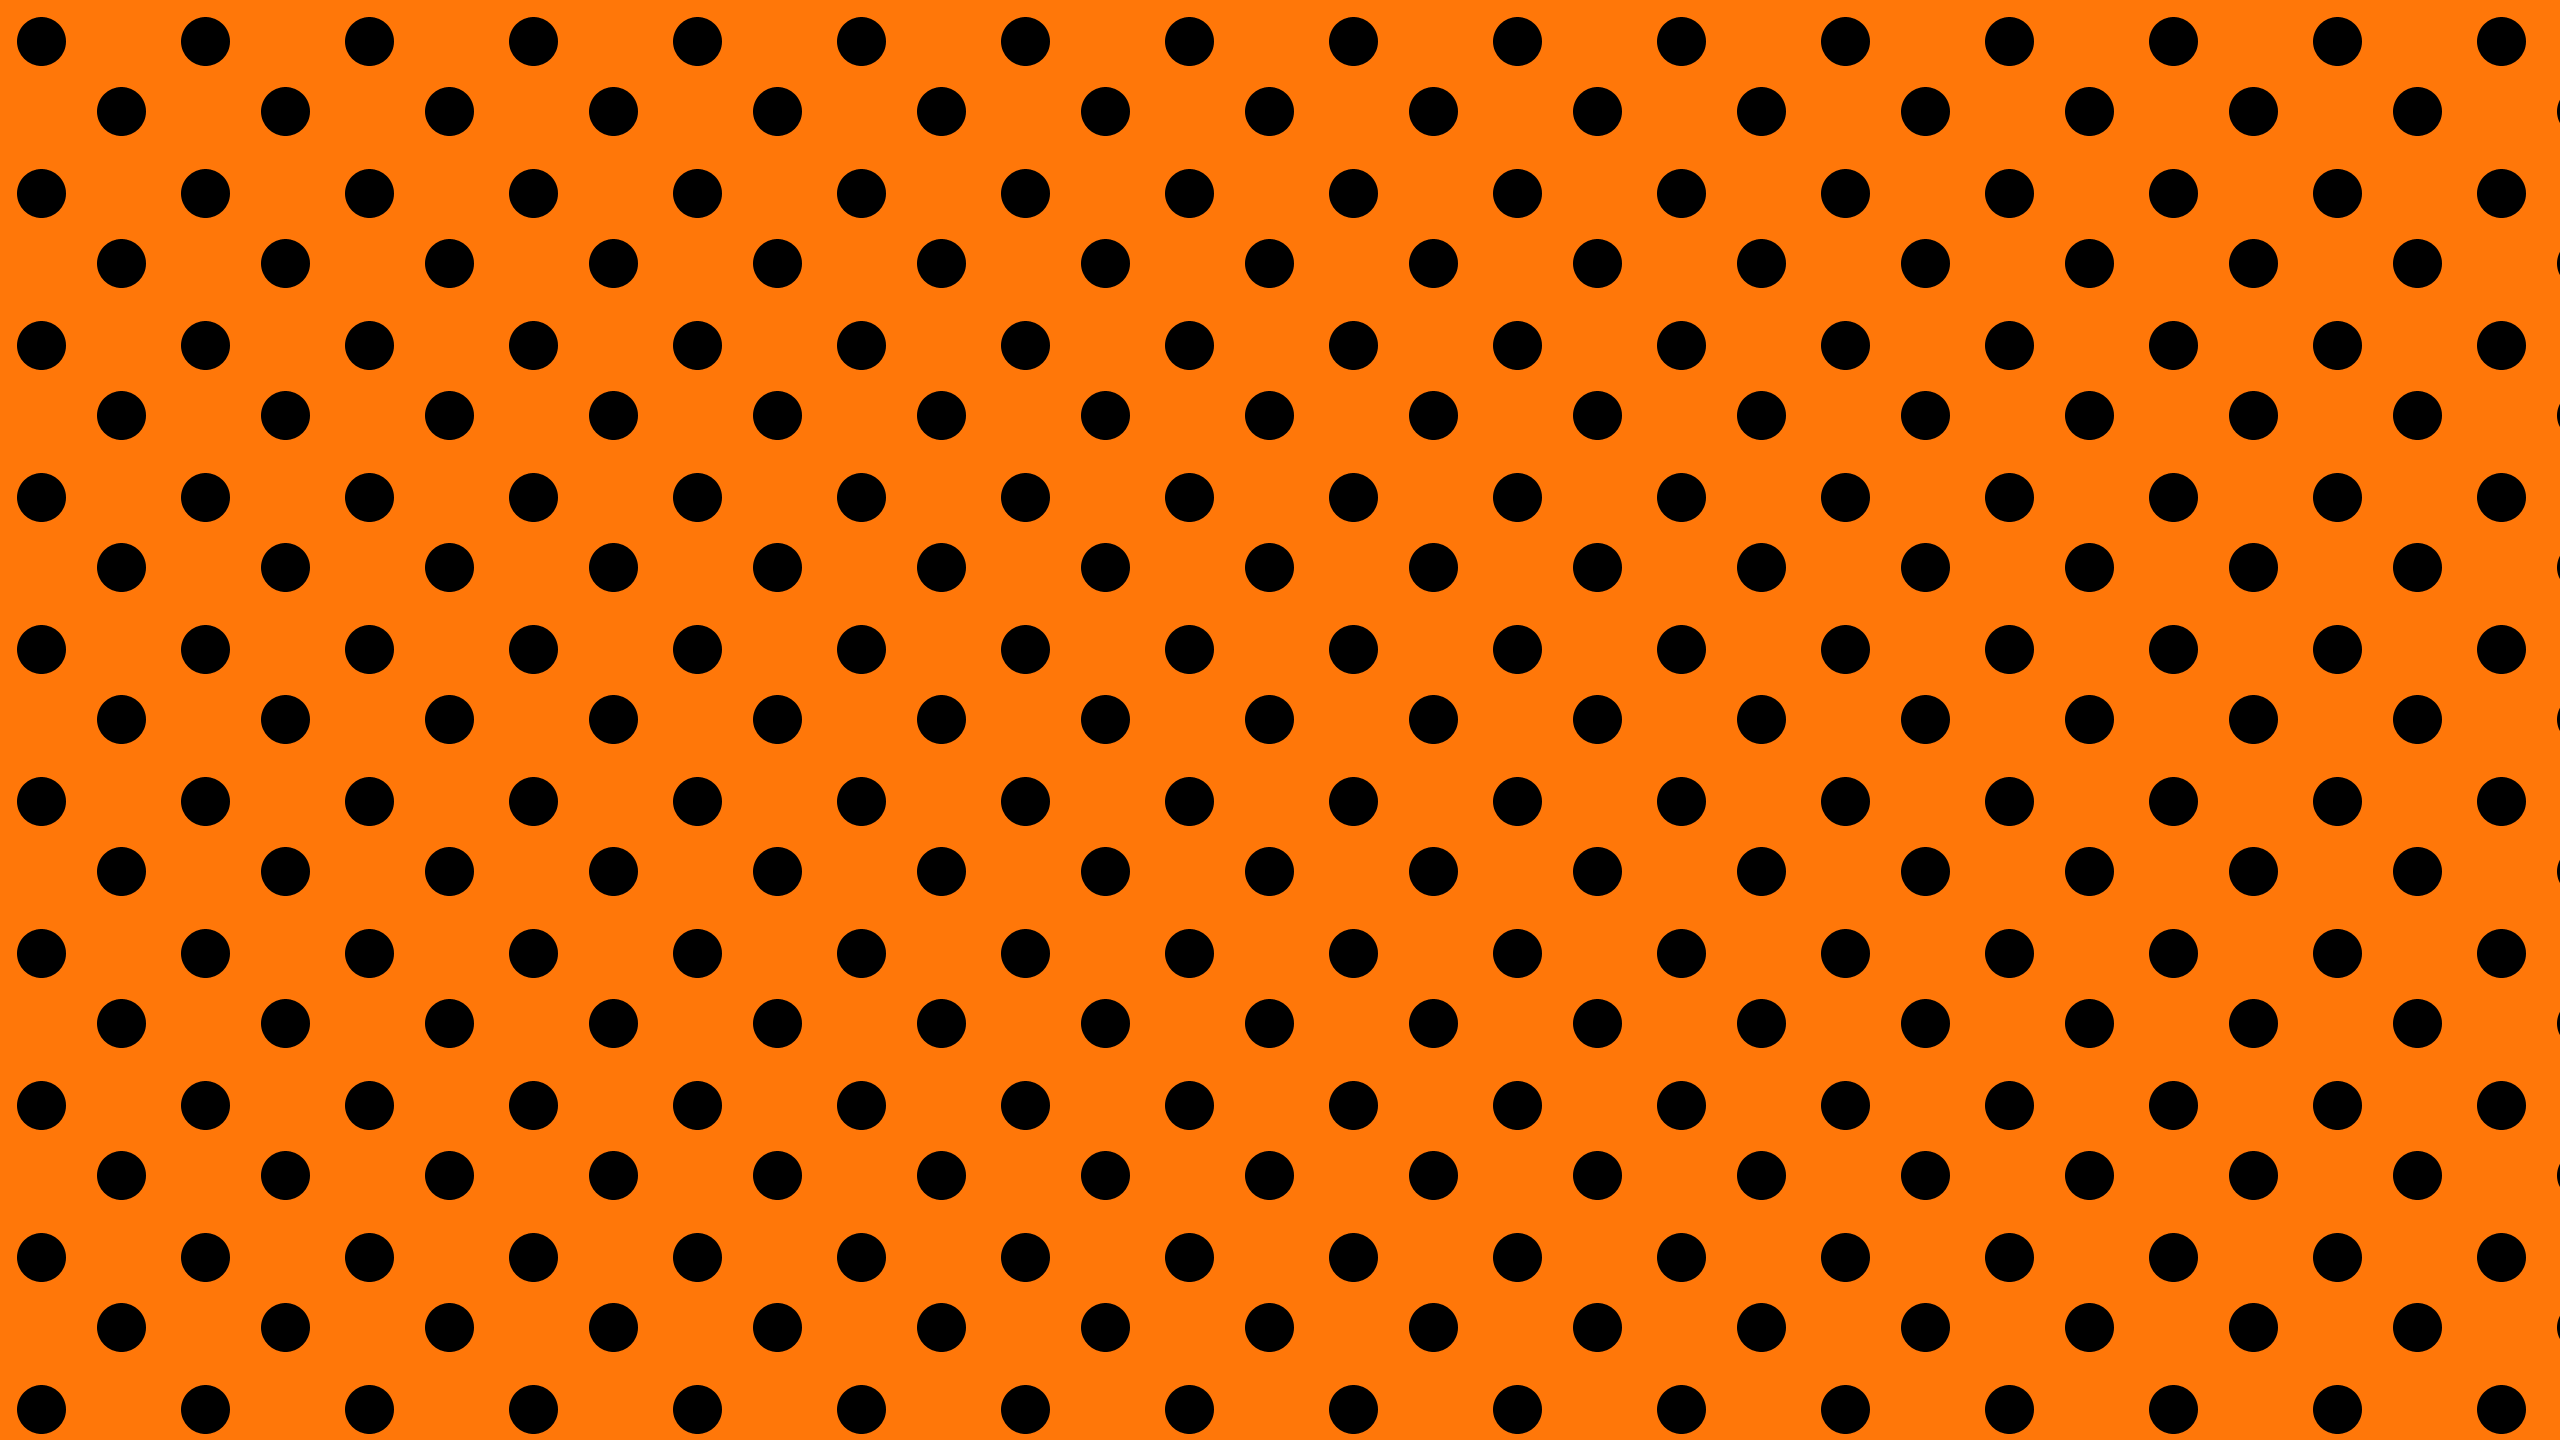 Orange and black wallpaper background 61849 2560x1440 px orange and black wallpaper background 61849 voltagebd Choice Image